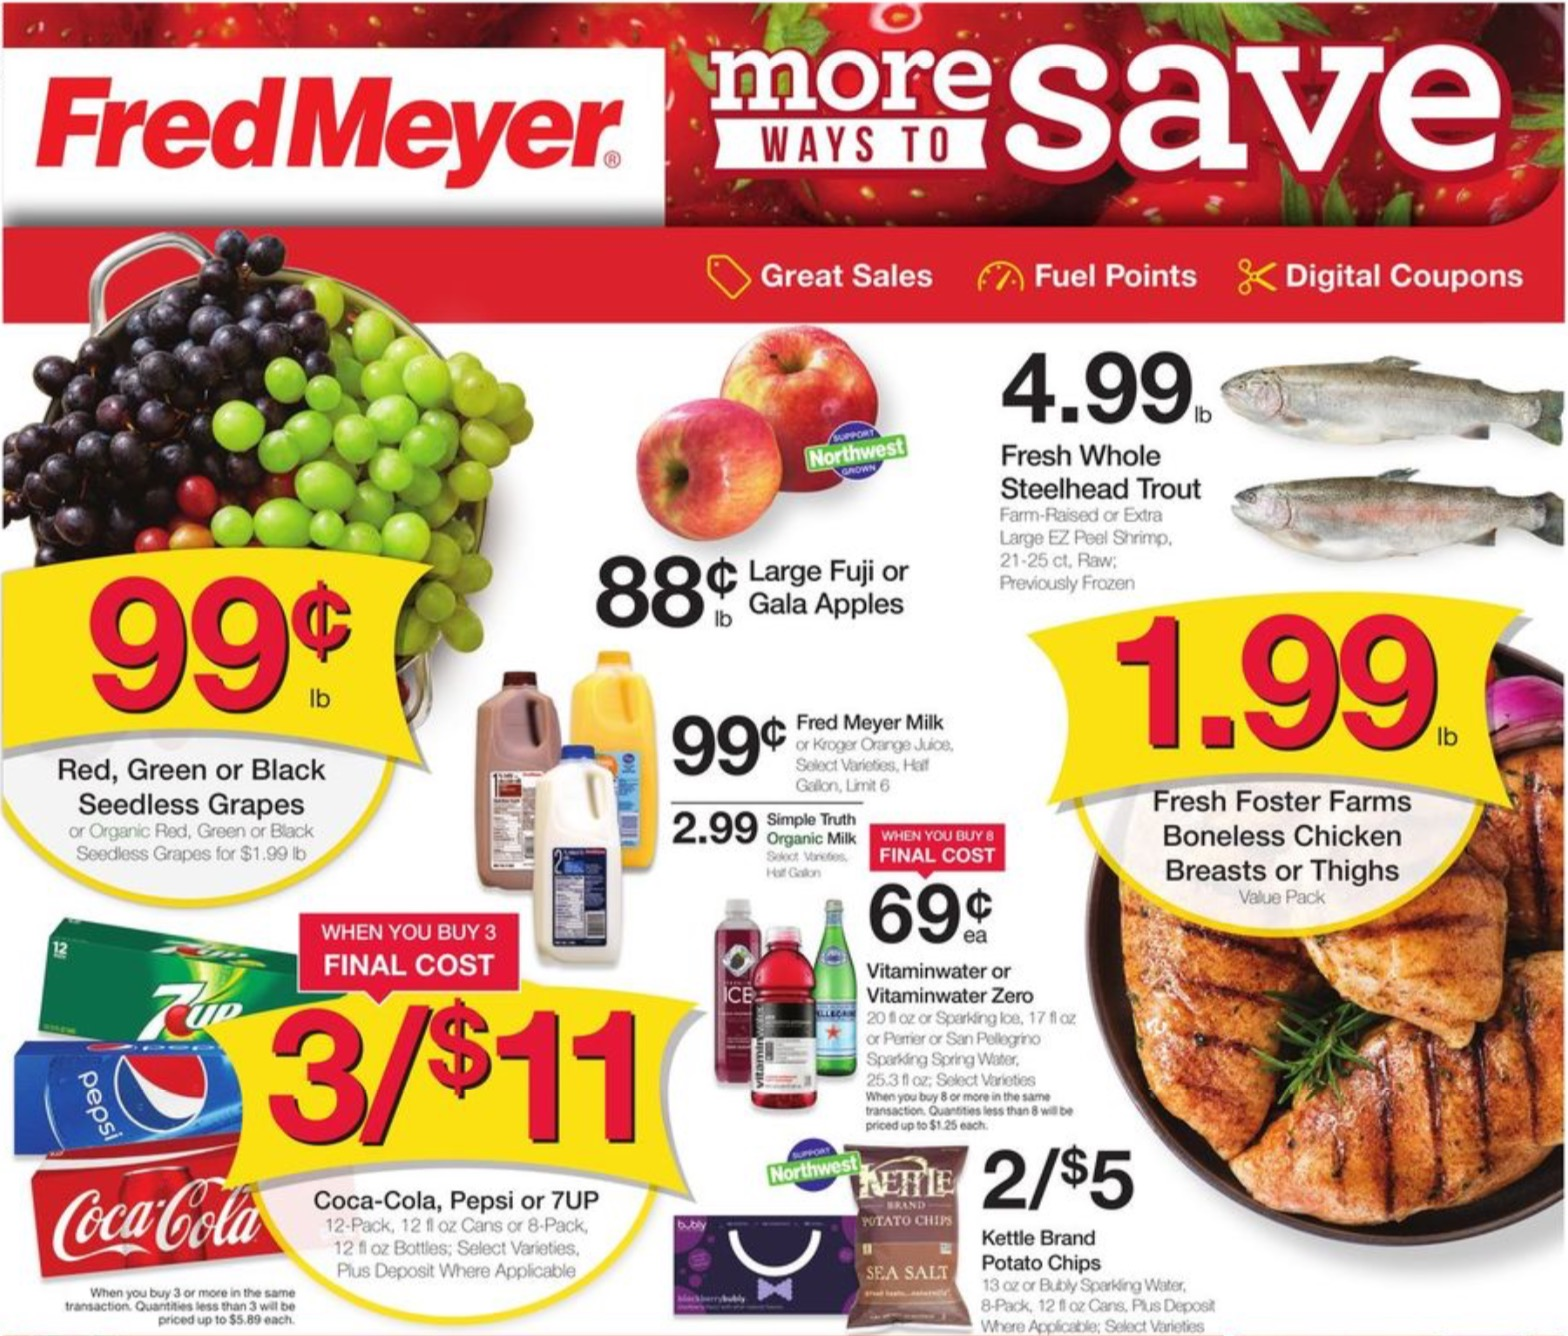 Fred Meyer Weekly Ad (9/18/19 - 9/24/19) Early Preview